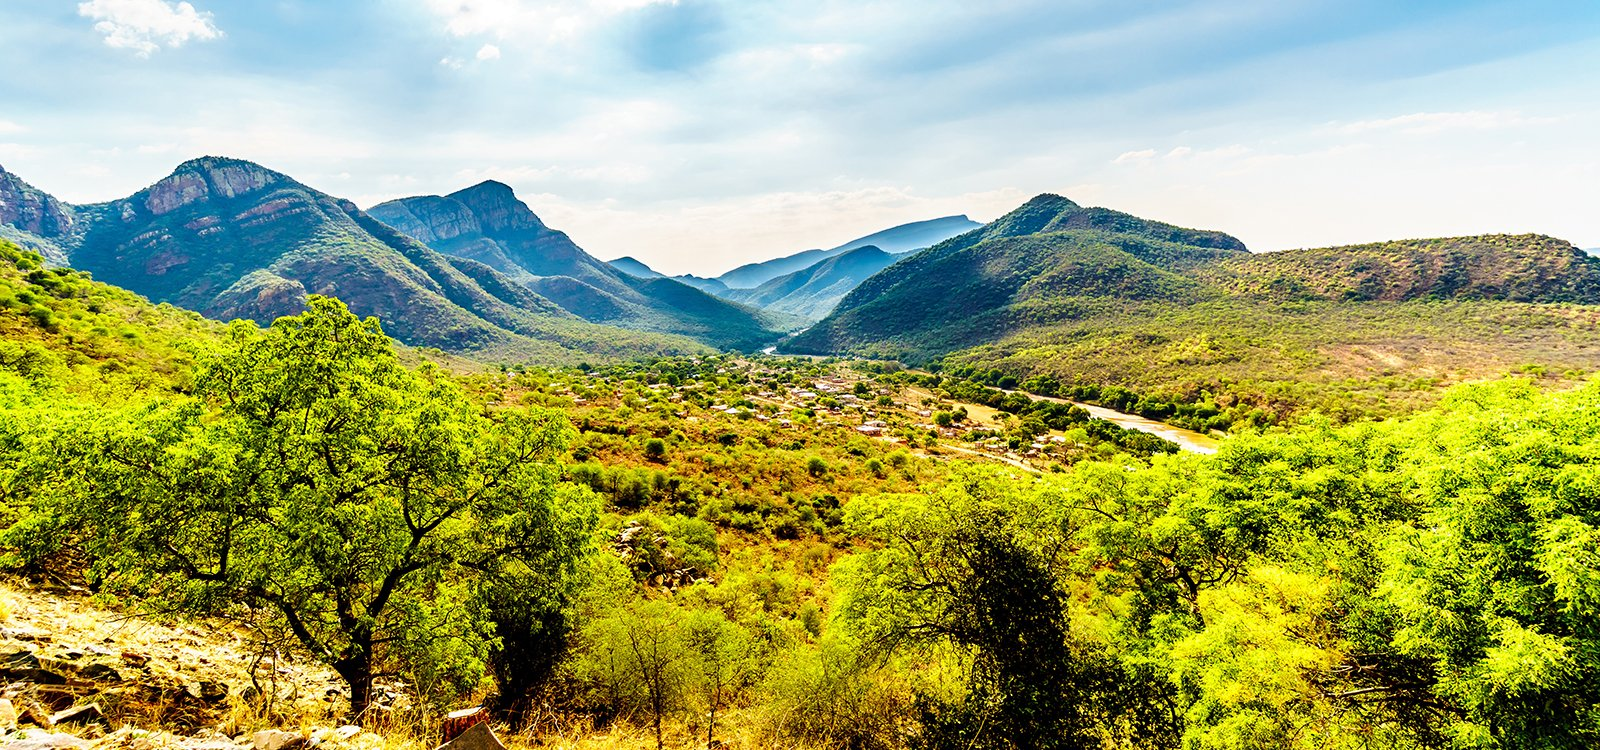 <p>Around two-thirds of Mpumalanga's land is used for agriculture, including natural grazing land and farming</p>